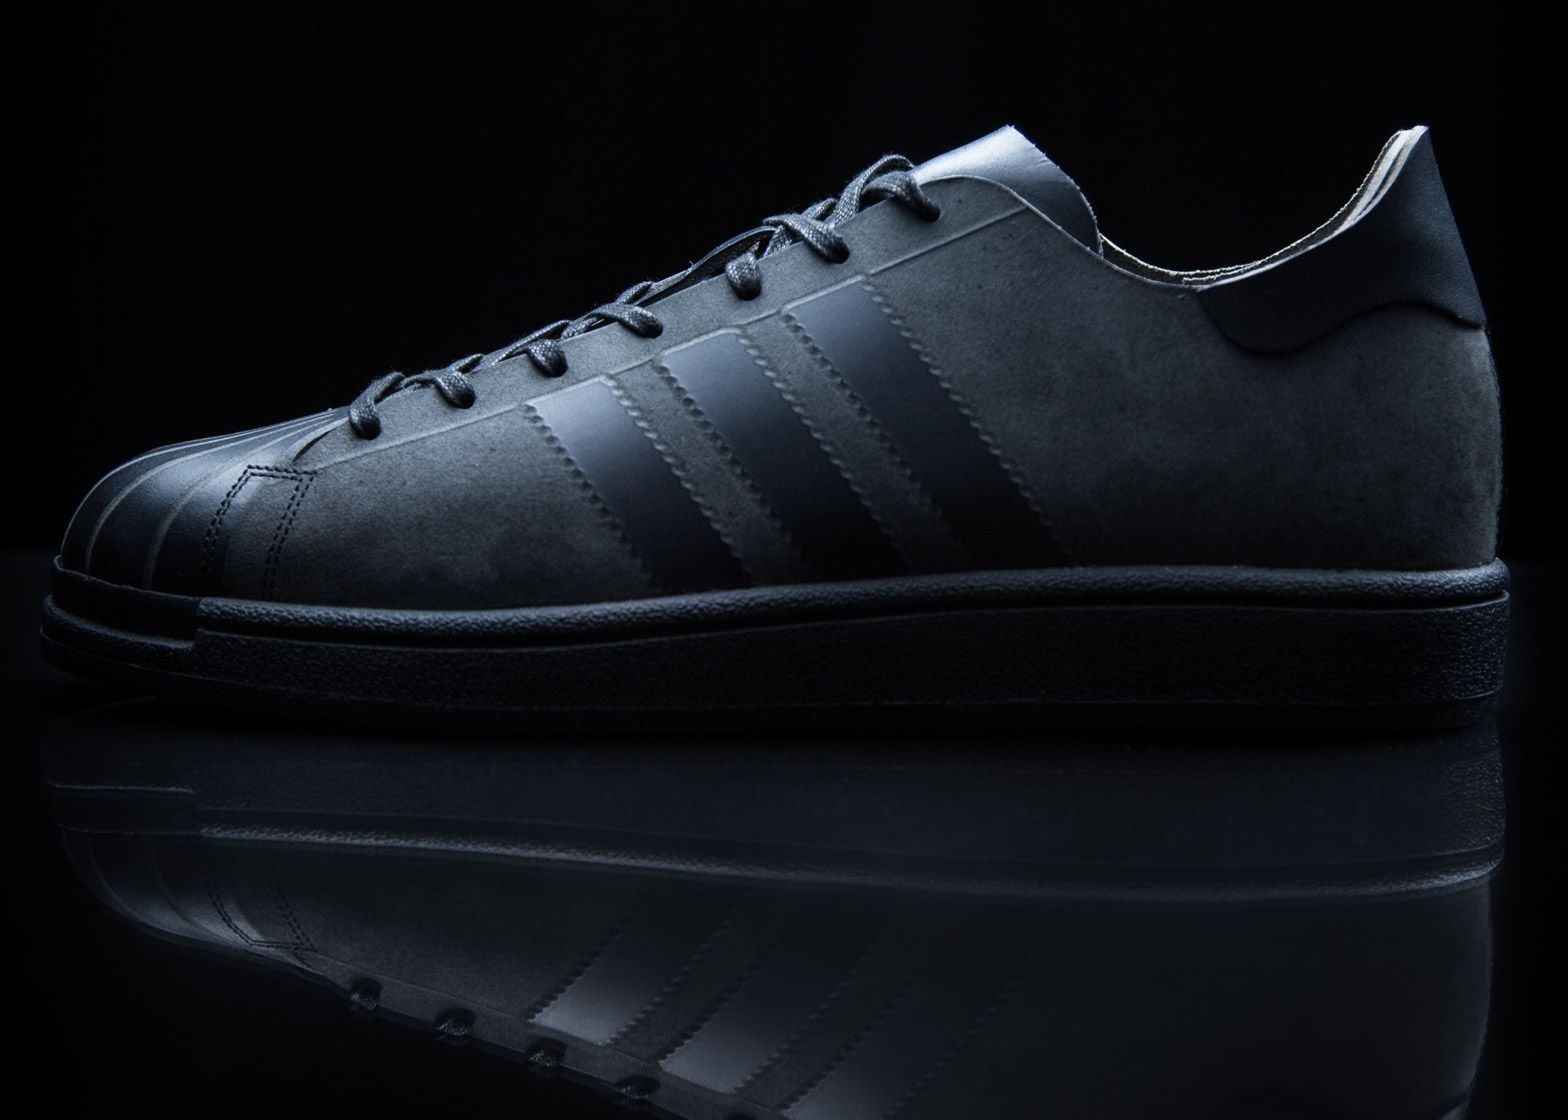 Alexander Taylor mills leather for limited edition Adidas shoe